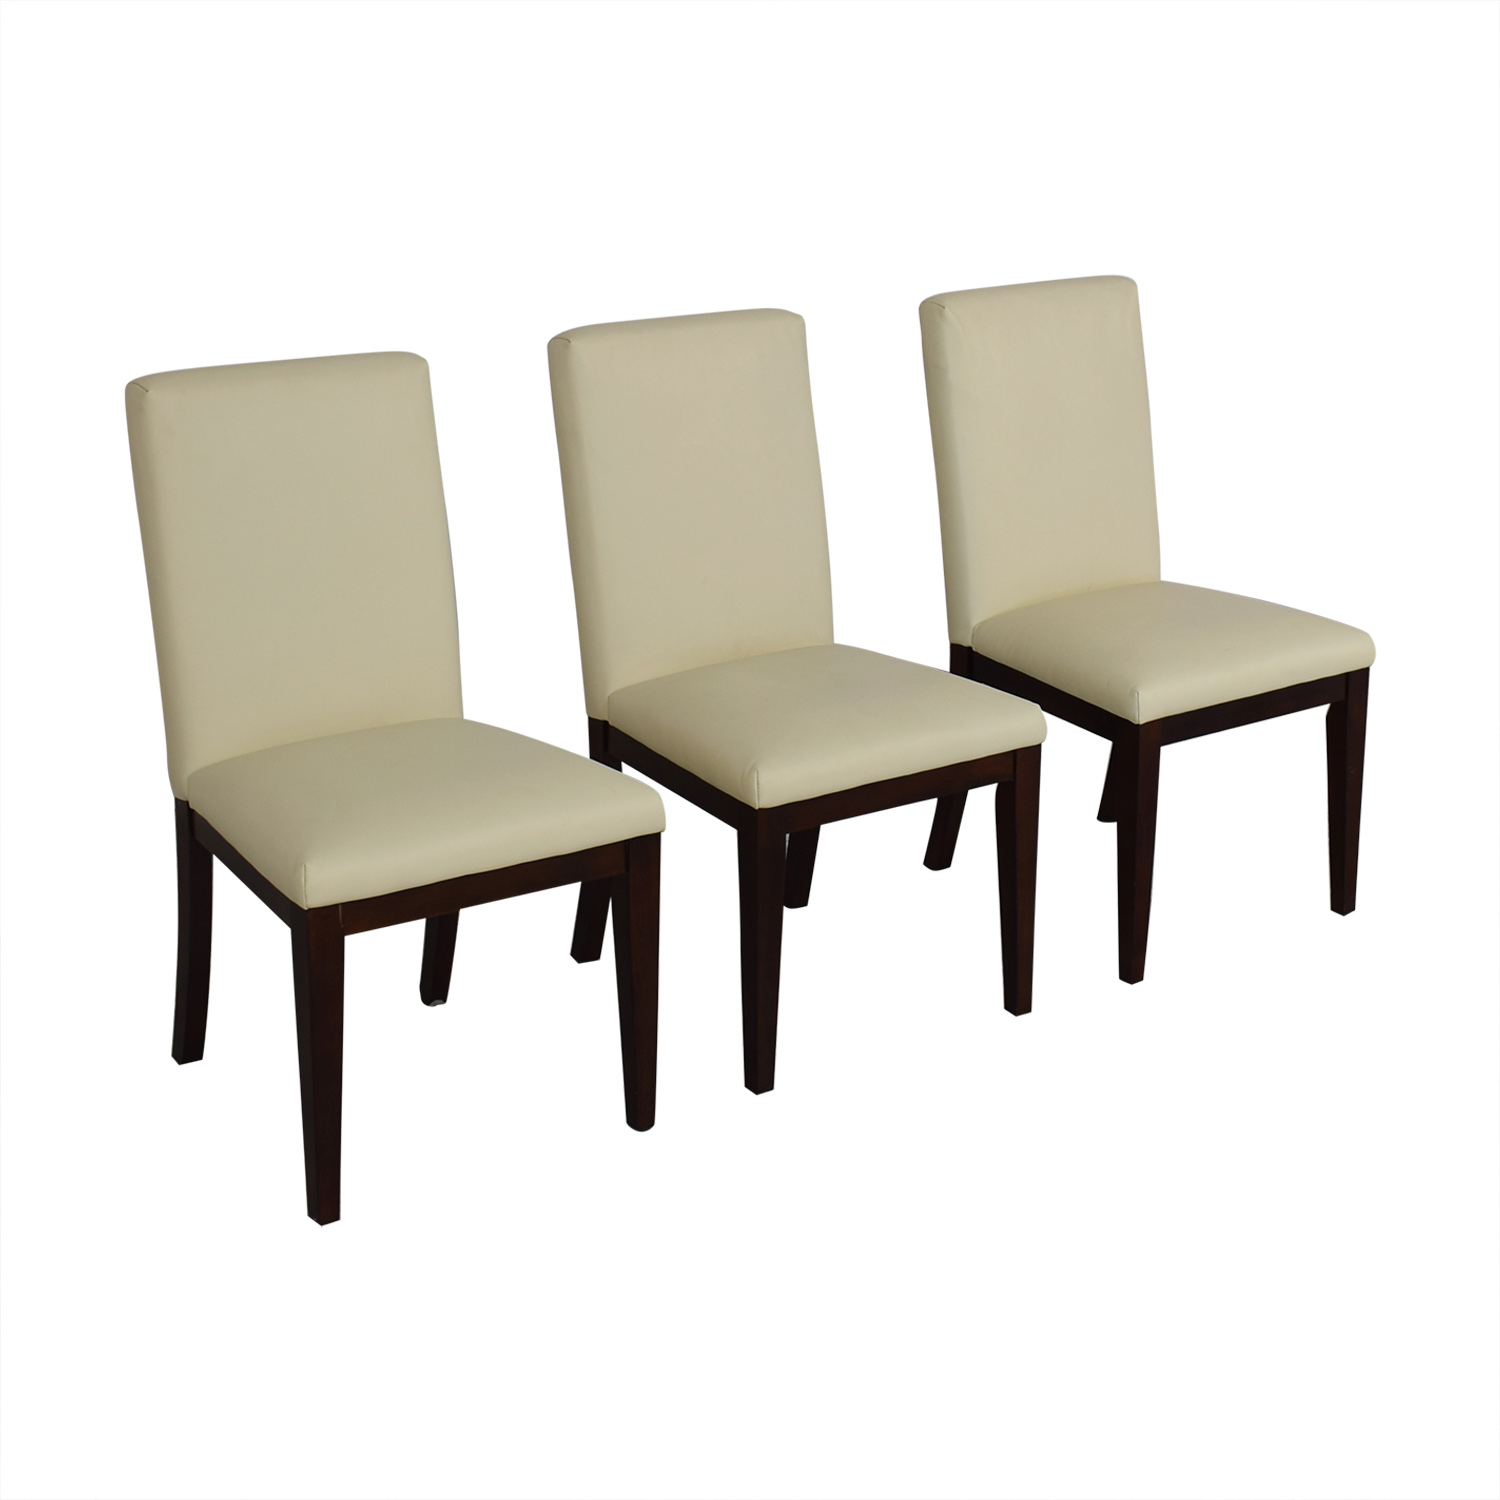 Macy's Macy's Dining Chairs dimensions